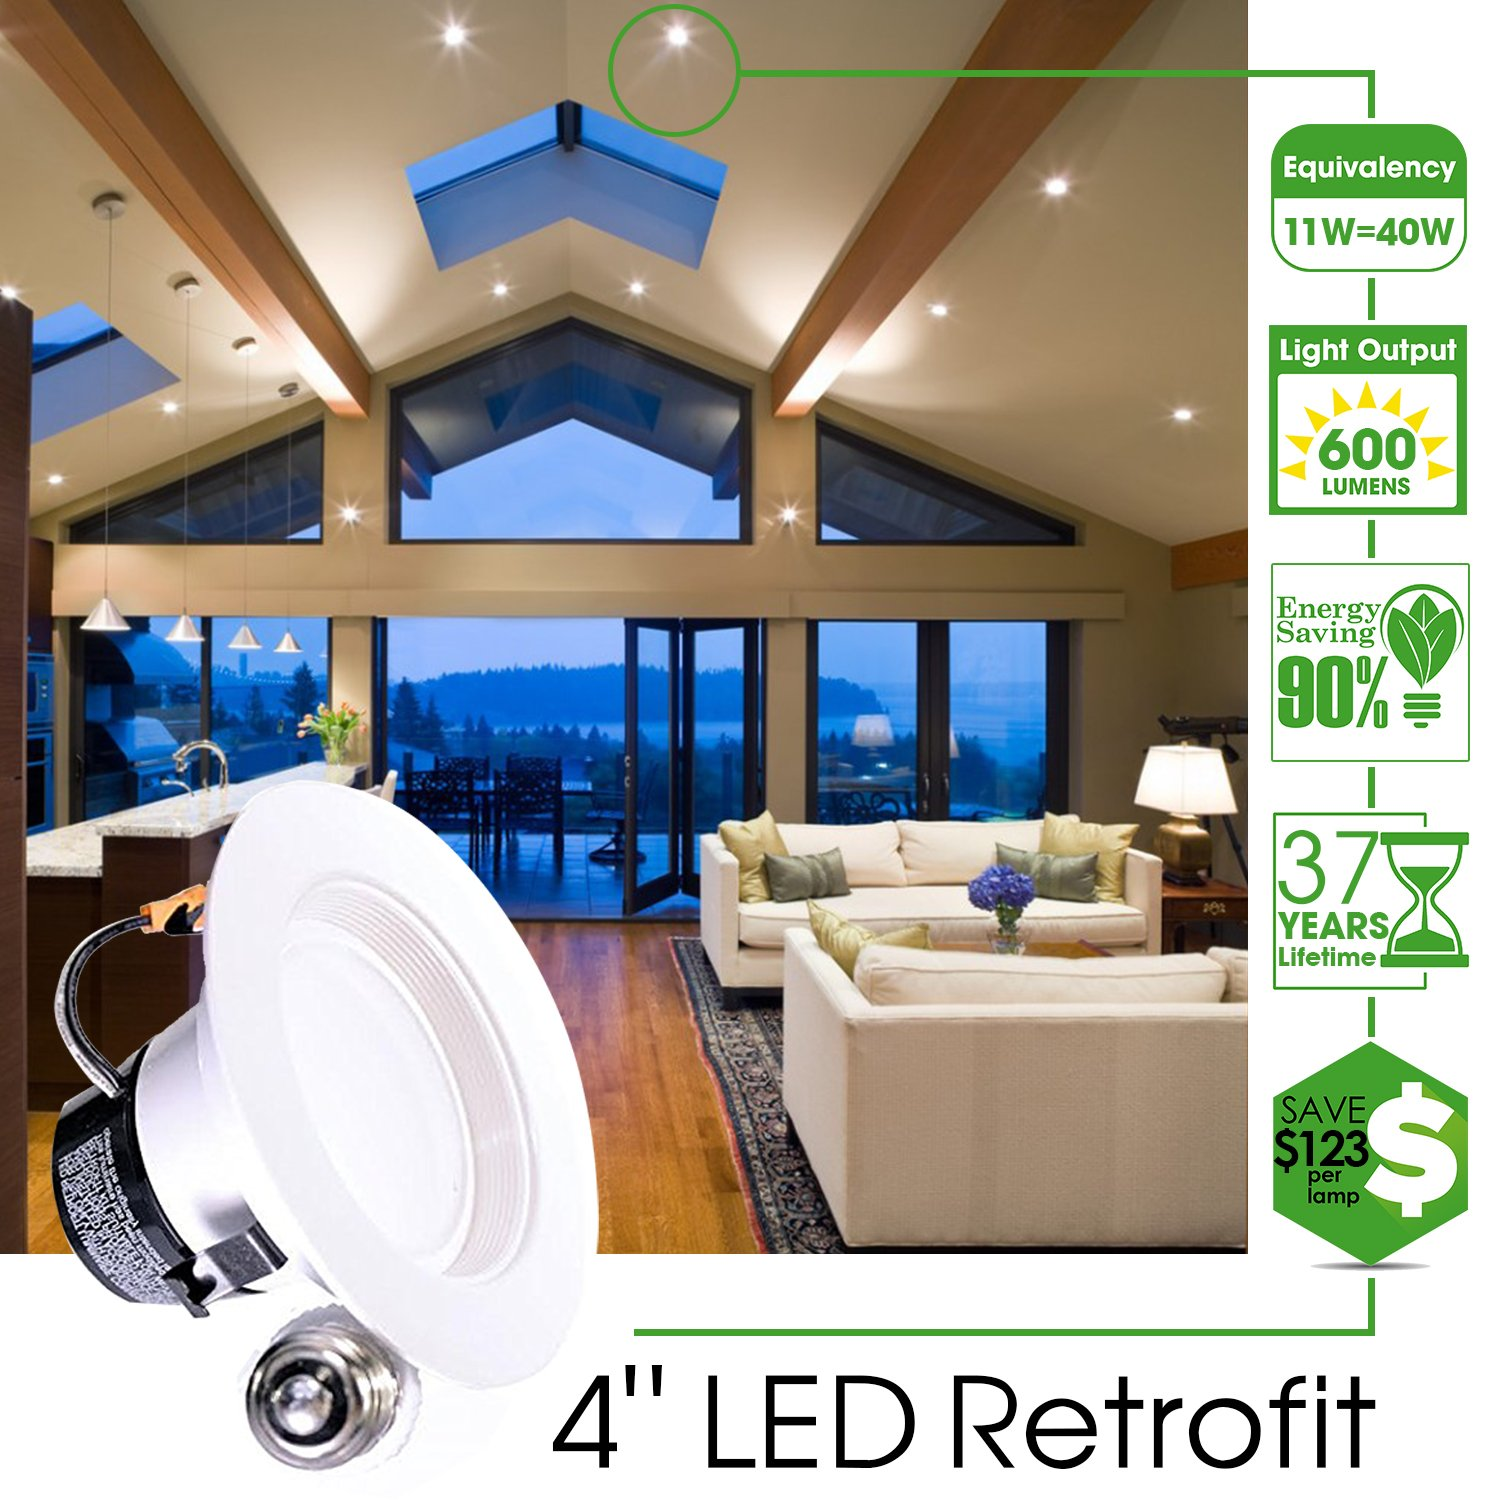 UL Dimmable Simple Retrofit Installation 660 LM Sunco Lighting 4 Inch LED Recessed Downlight 11W=40W 2700K Soft White Energy Star Baffle Trim Damp Rated